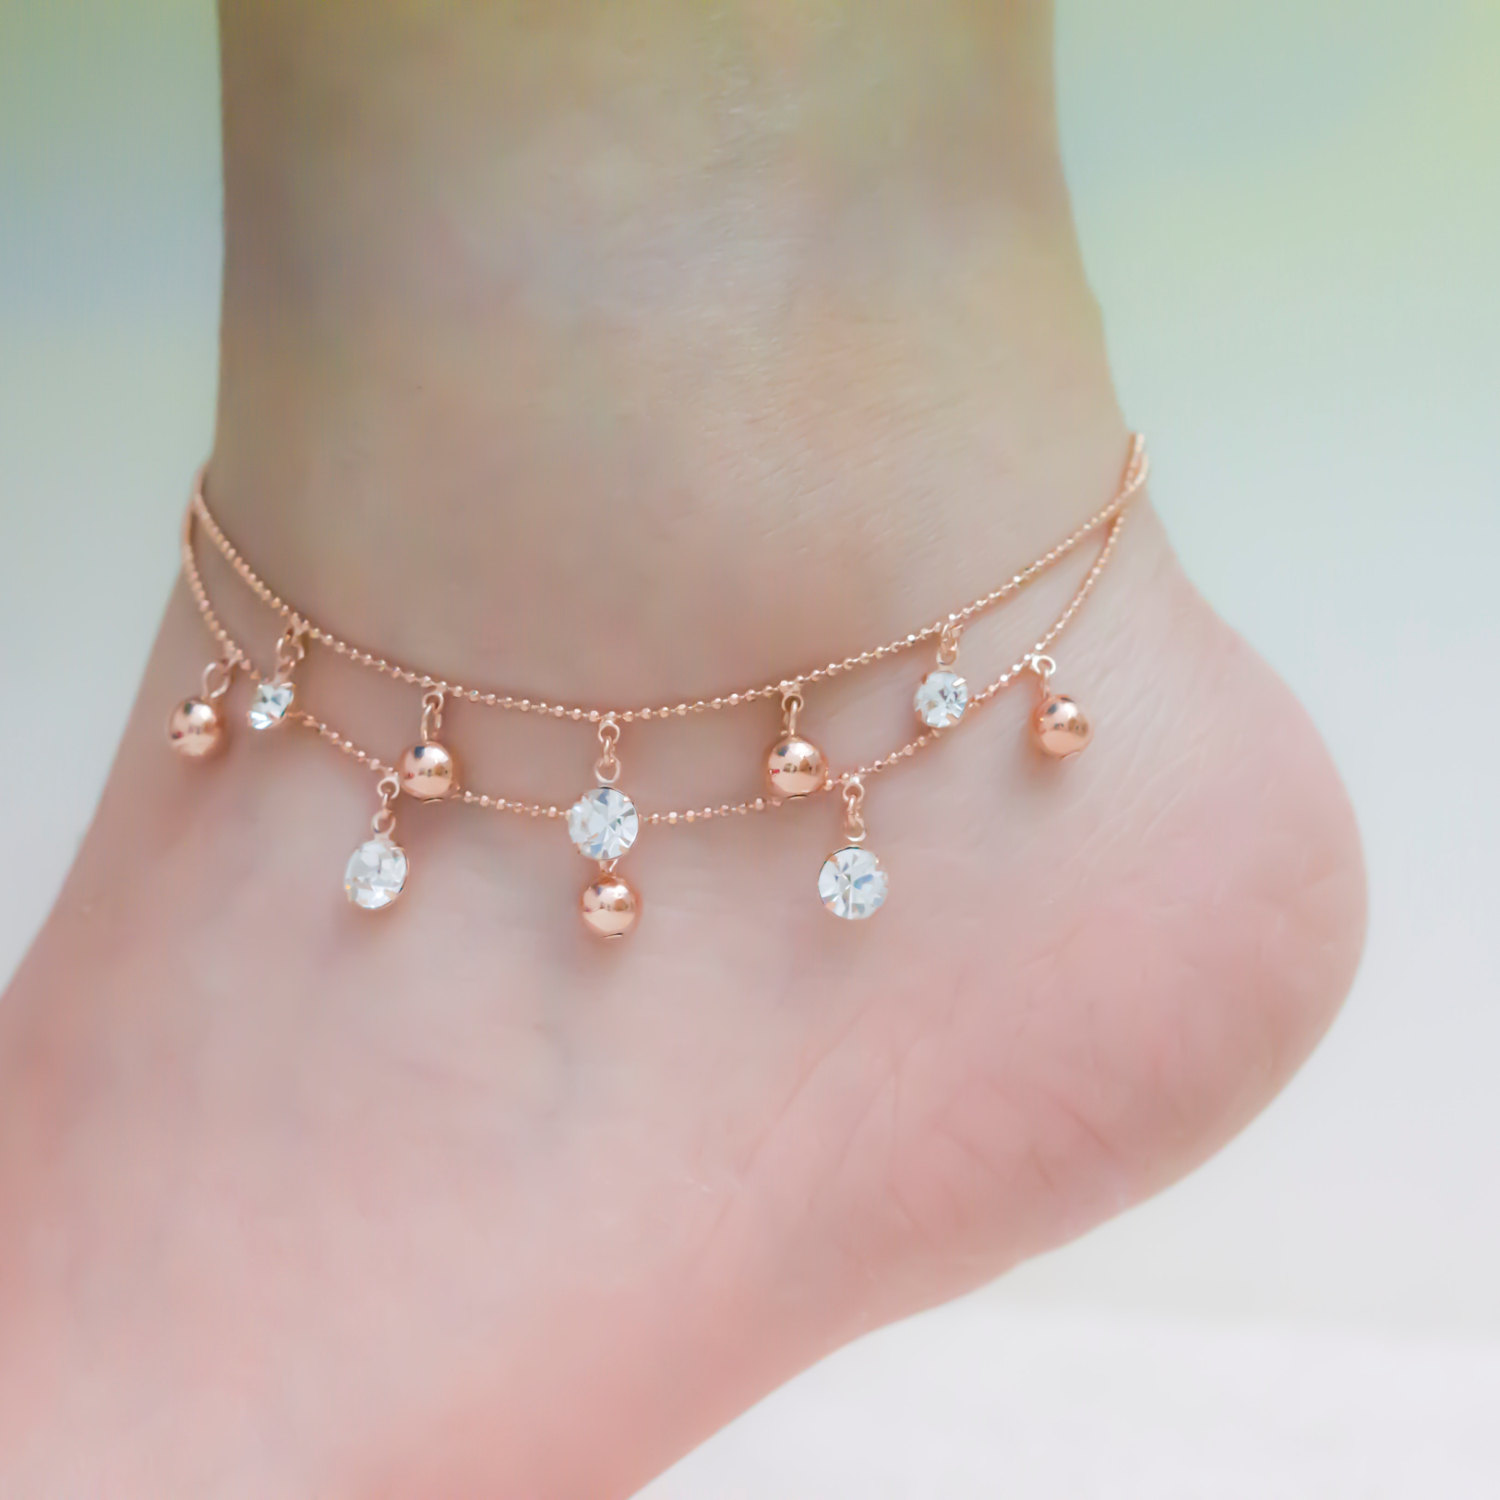 in anklets jewelry product for ankle handmade gold leg love bracelet women a chain hugerect anklet